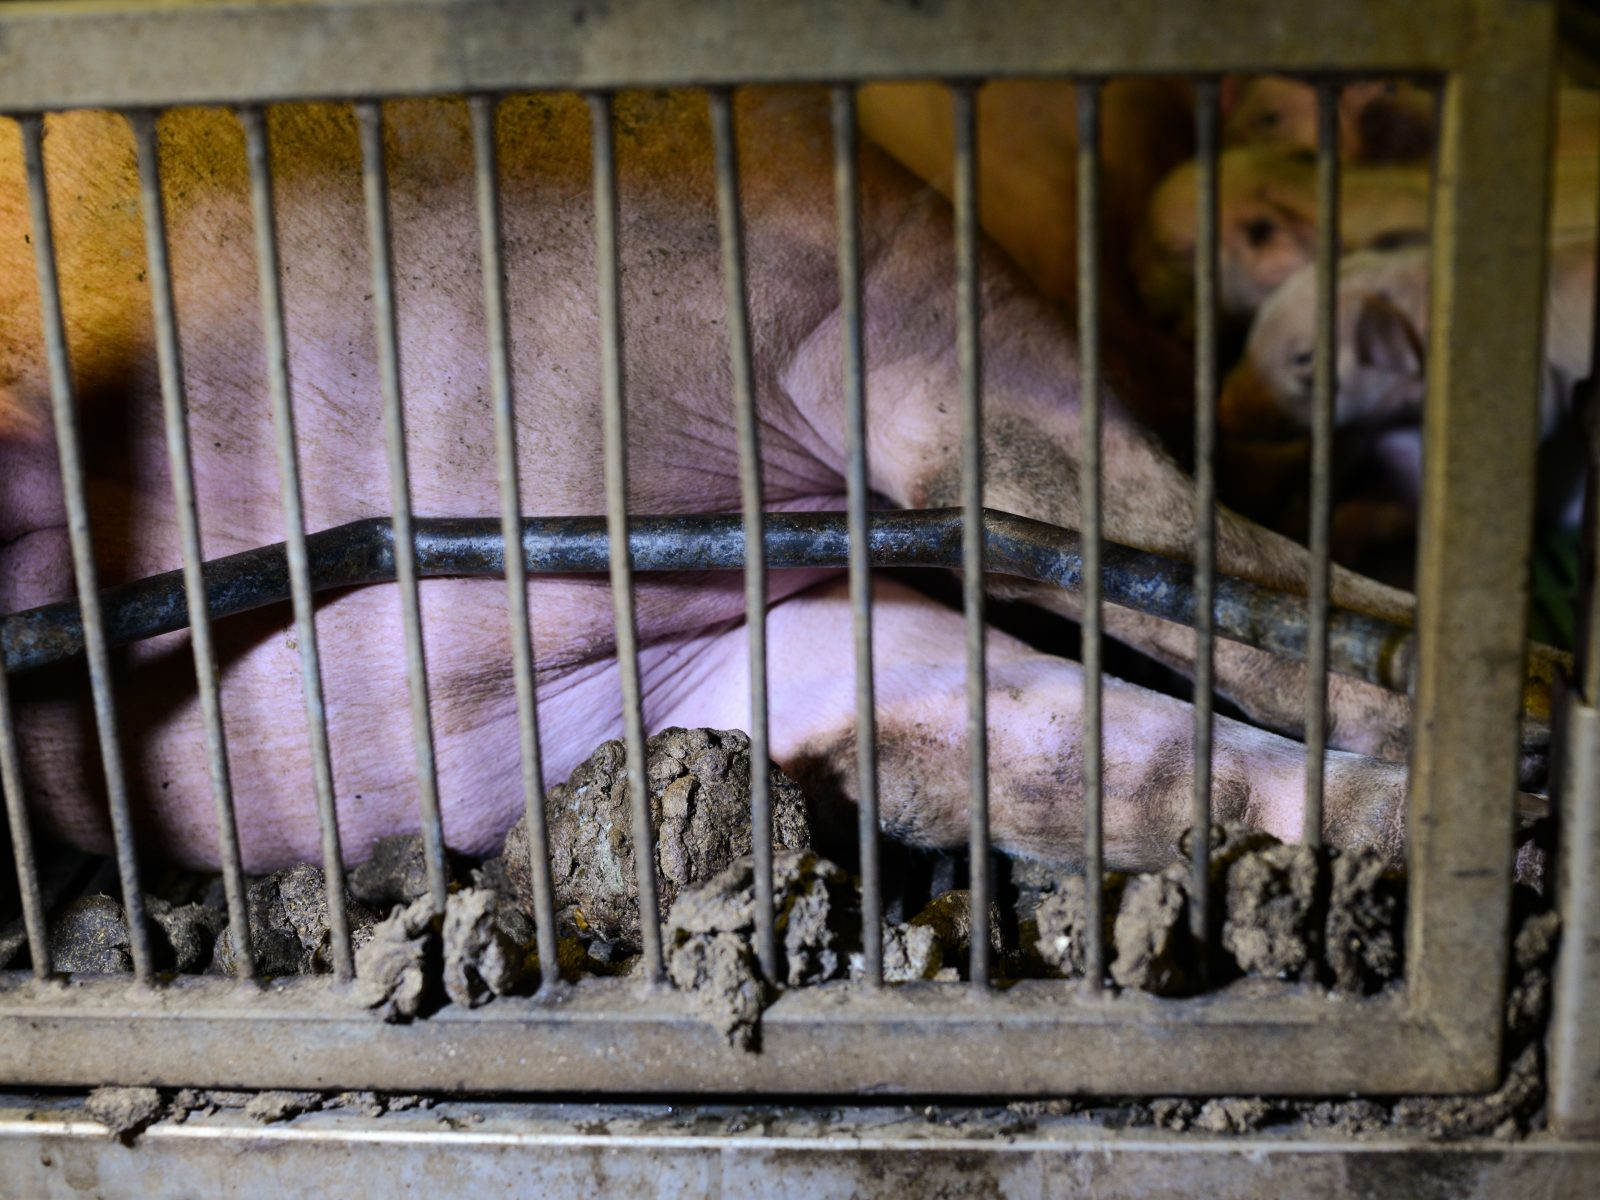 A sow is forced to lay with hindquarters pressed into the bars of her gestation crate and her own feces